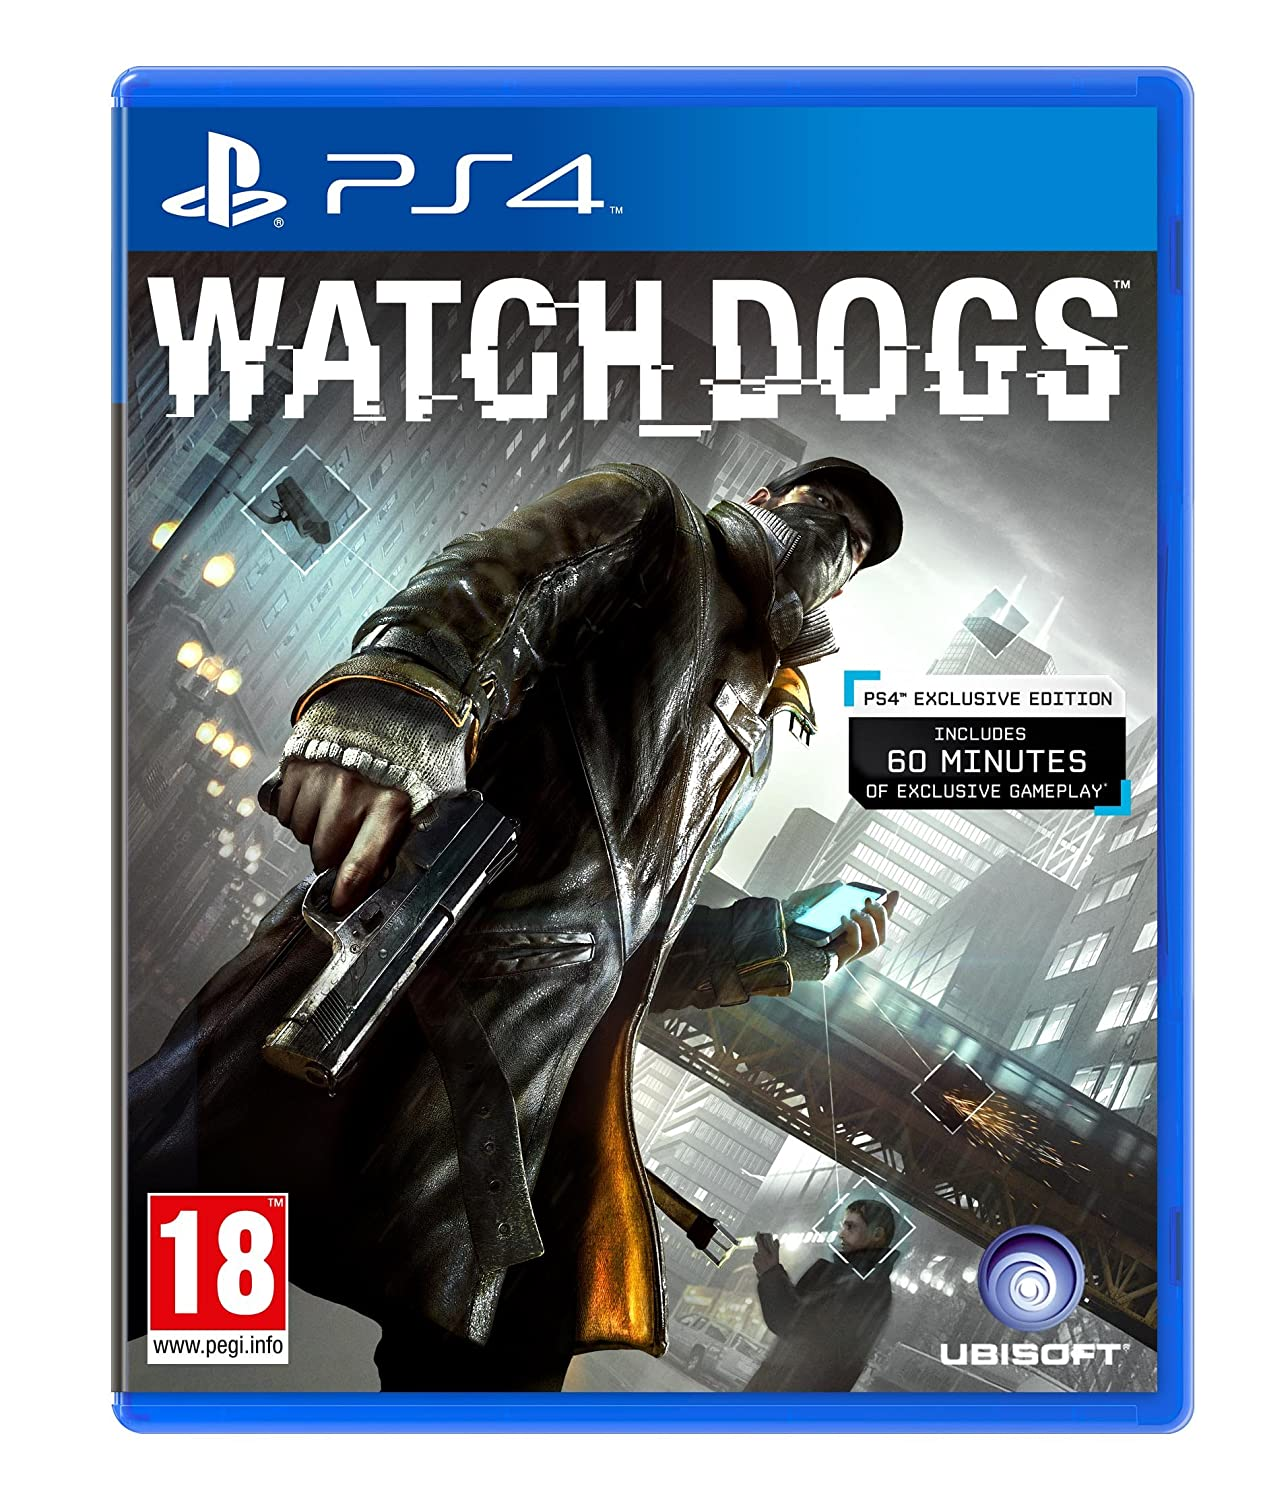 Watch Dogs (PS4): Amazon.co.uk: PC & Video Games